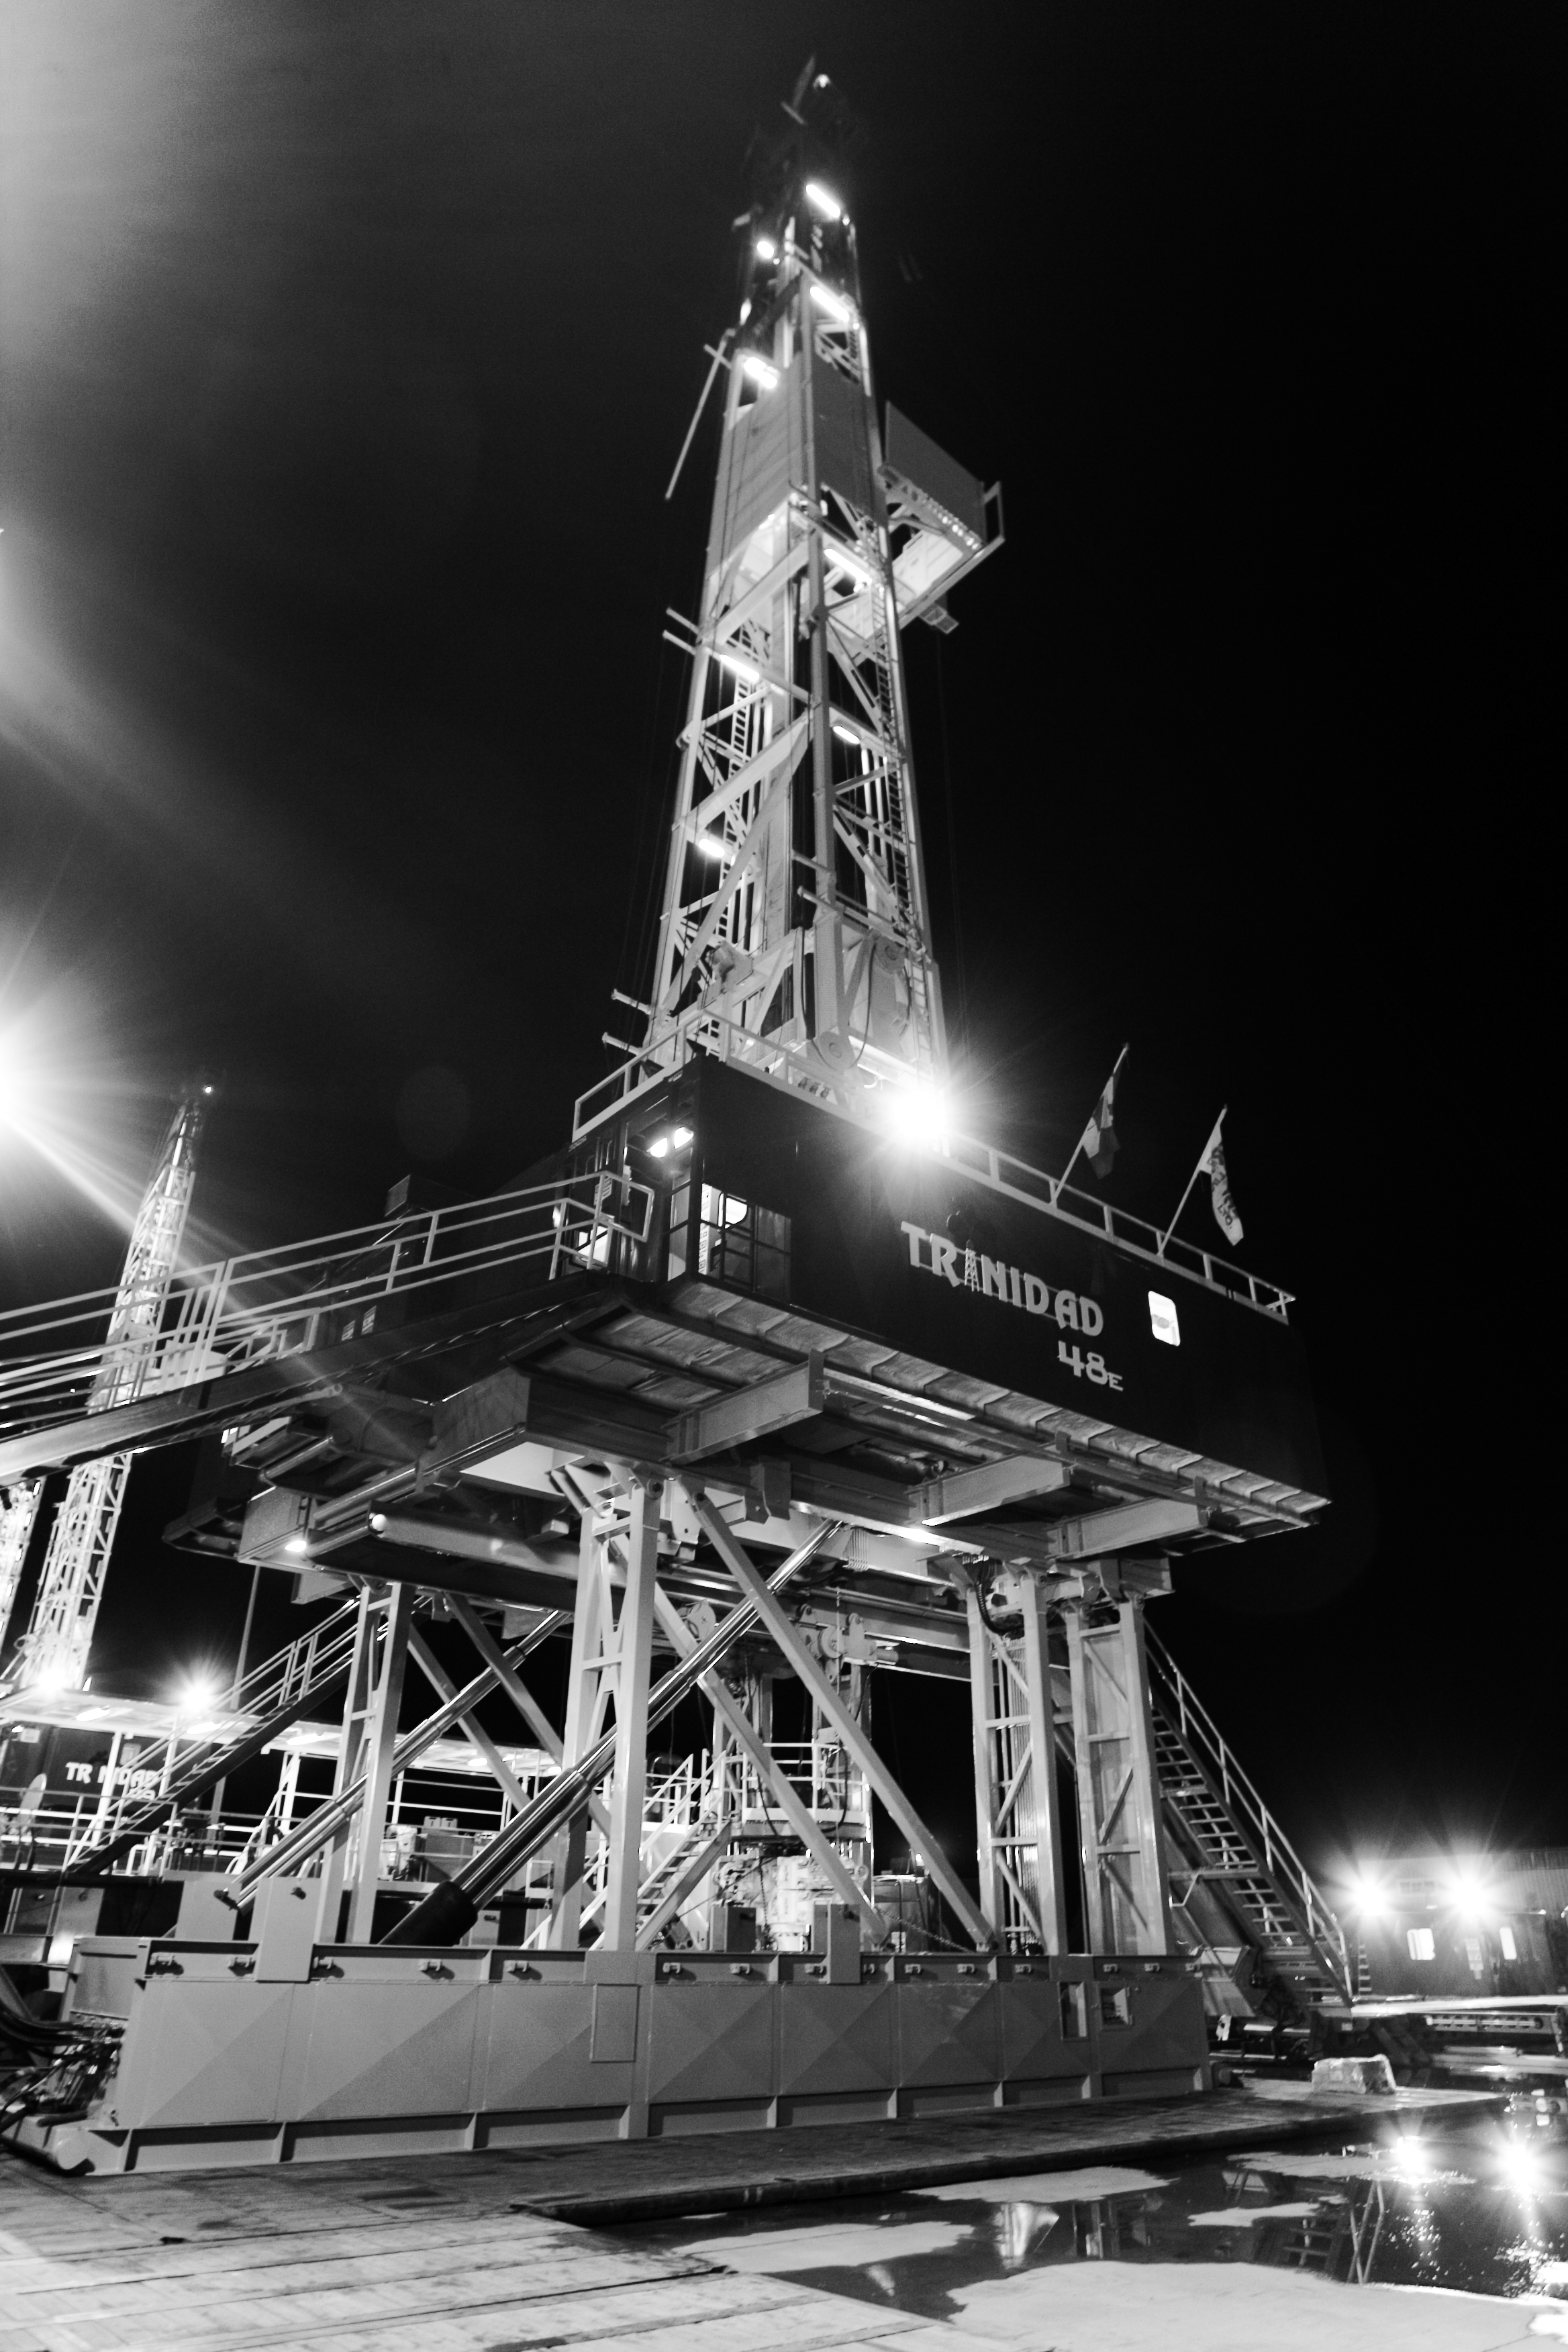 drilling rigs and technologies Forum provides robust equipment for all of your drilling needs all of our products are reliable and easy to usewe design every piece with you in mind and made servicing these products quick and stress-free.